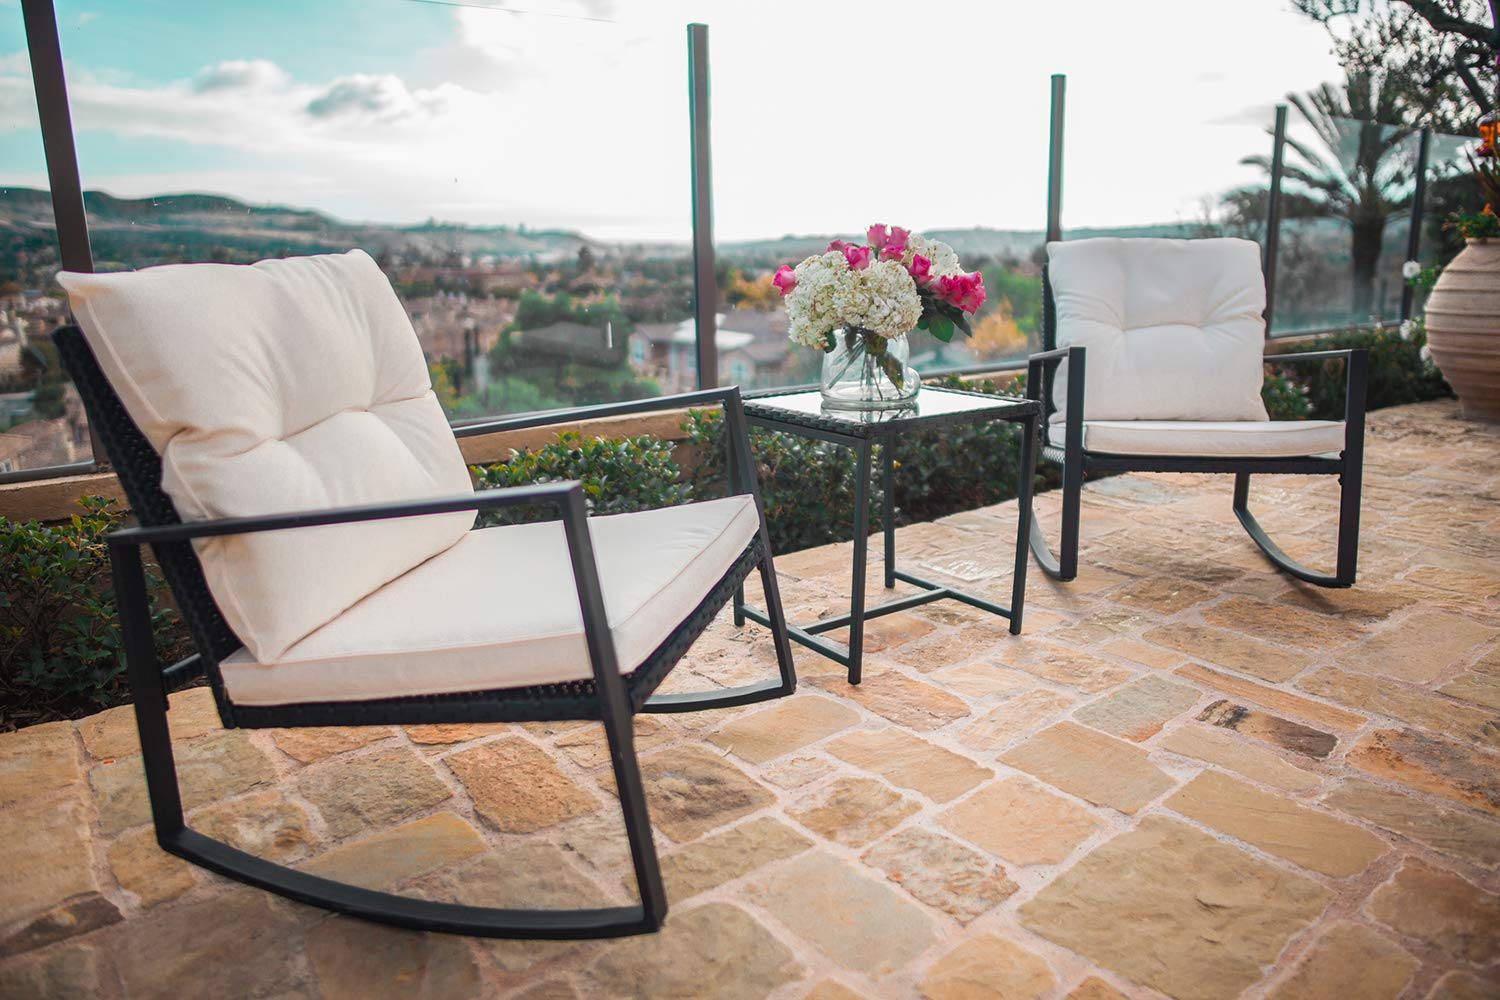 SUNCROWN Outdoor 3-Piece Rocking Bistro Set Black Wicker Furniture-Two Chairs with Glass Coffee Table Beige Cushion